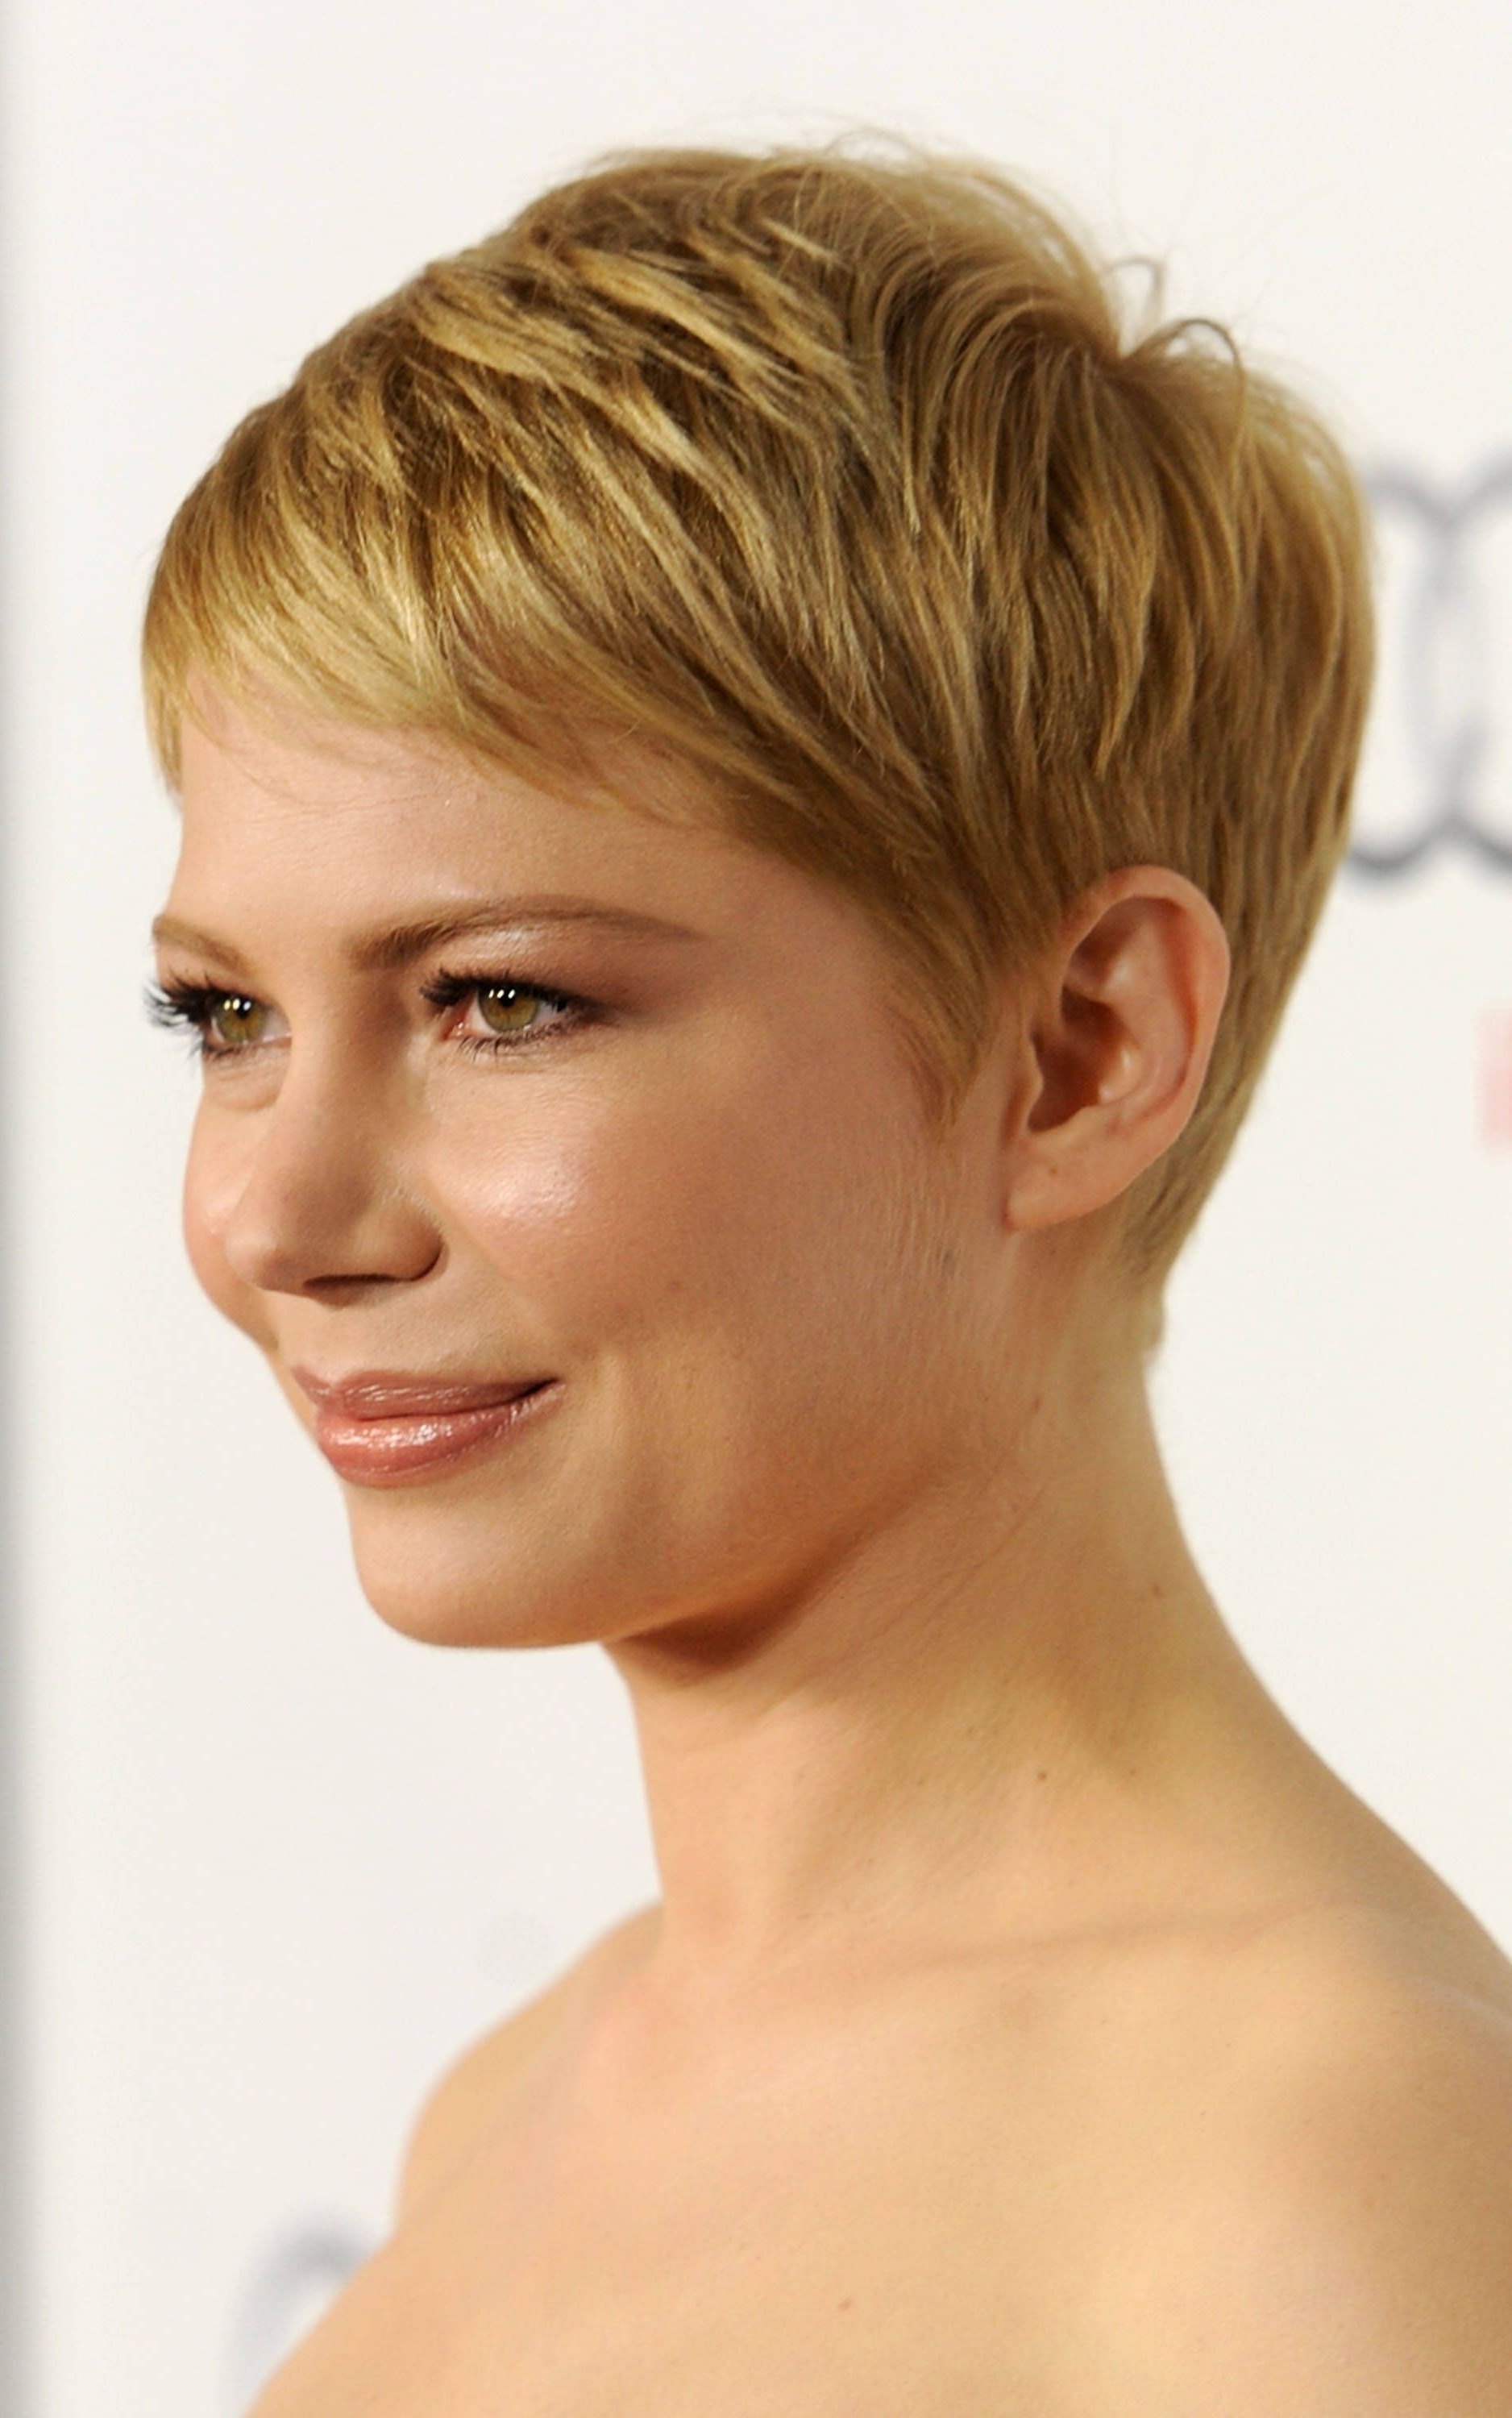 30 Trendy Pixie Hairstyles: Women Short Hair Cuts   Pixie Hair Inside Best And Newest Pixie Hairstyles For Girls (View 13 of 15)